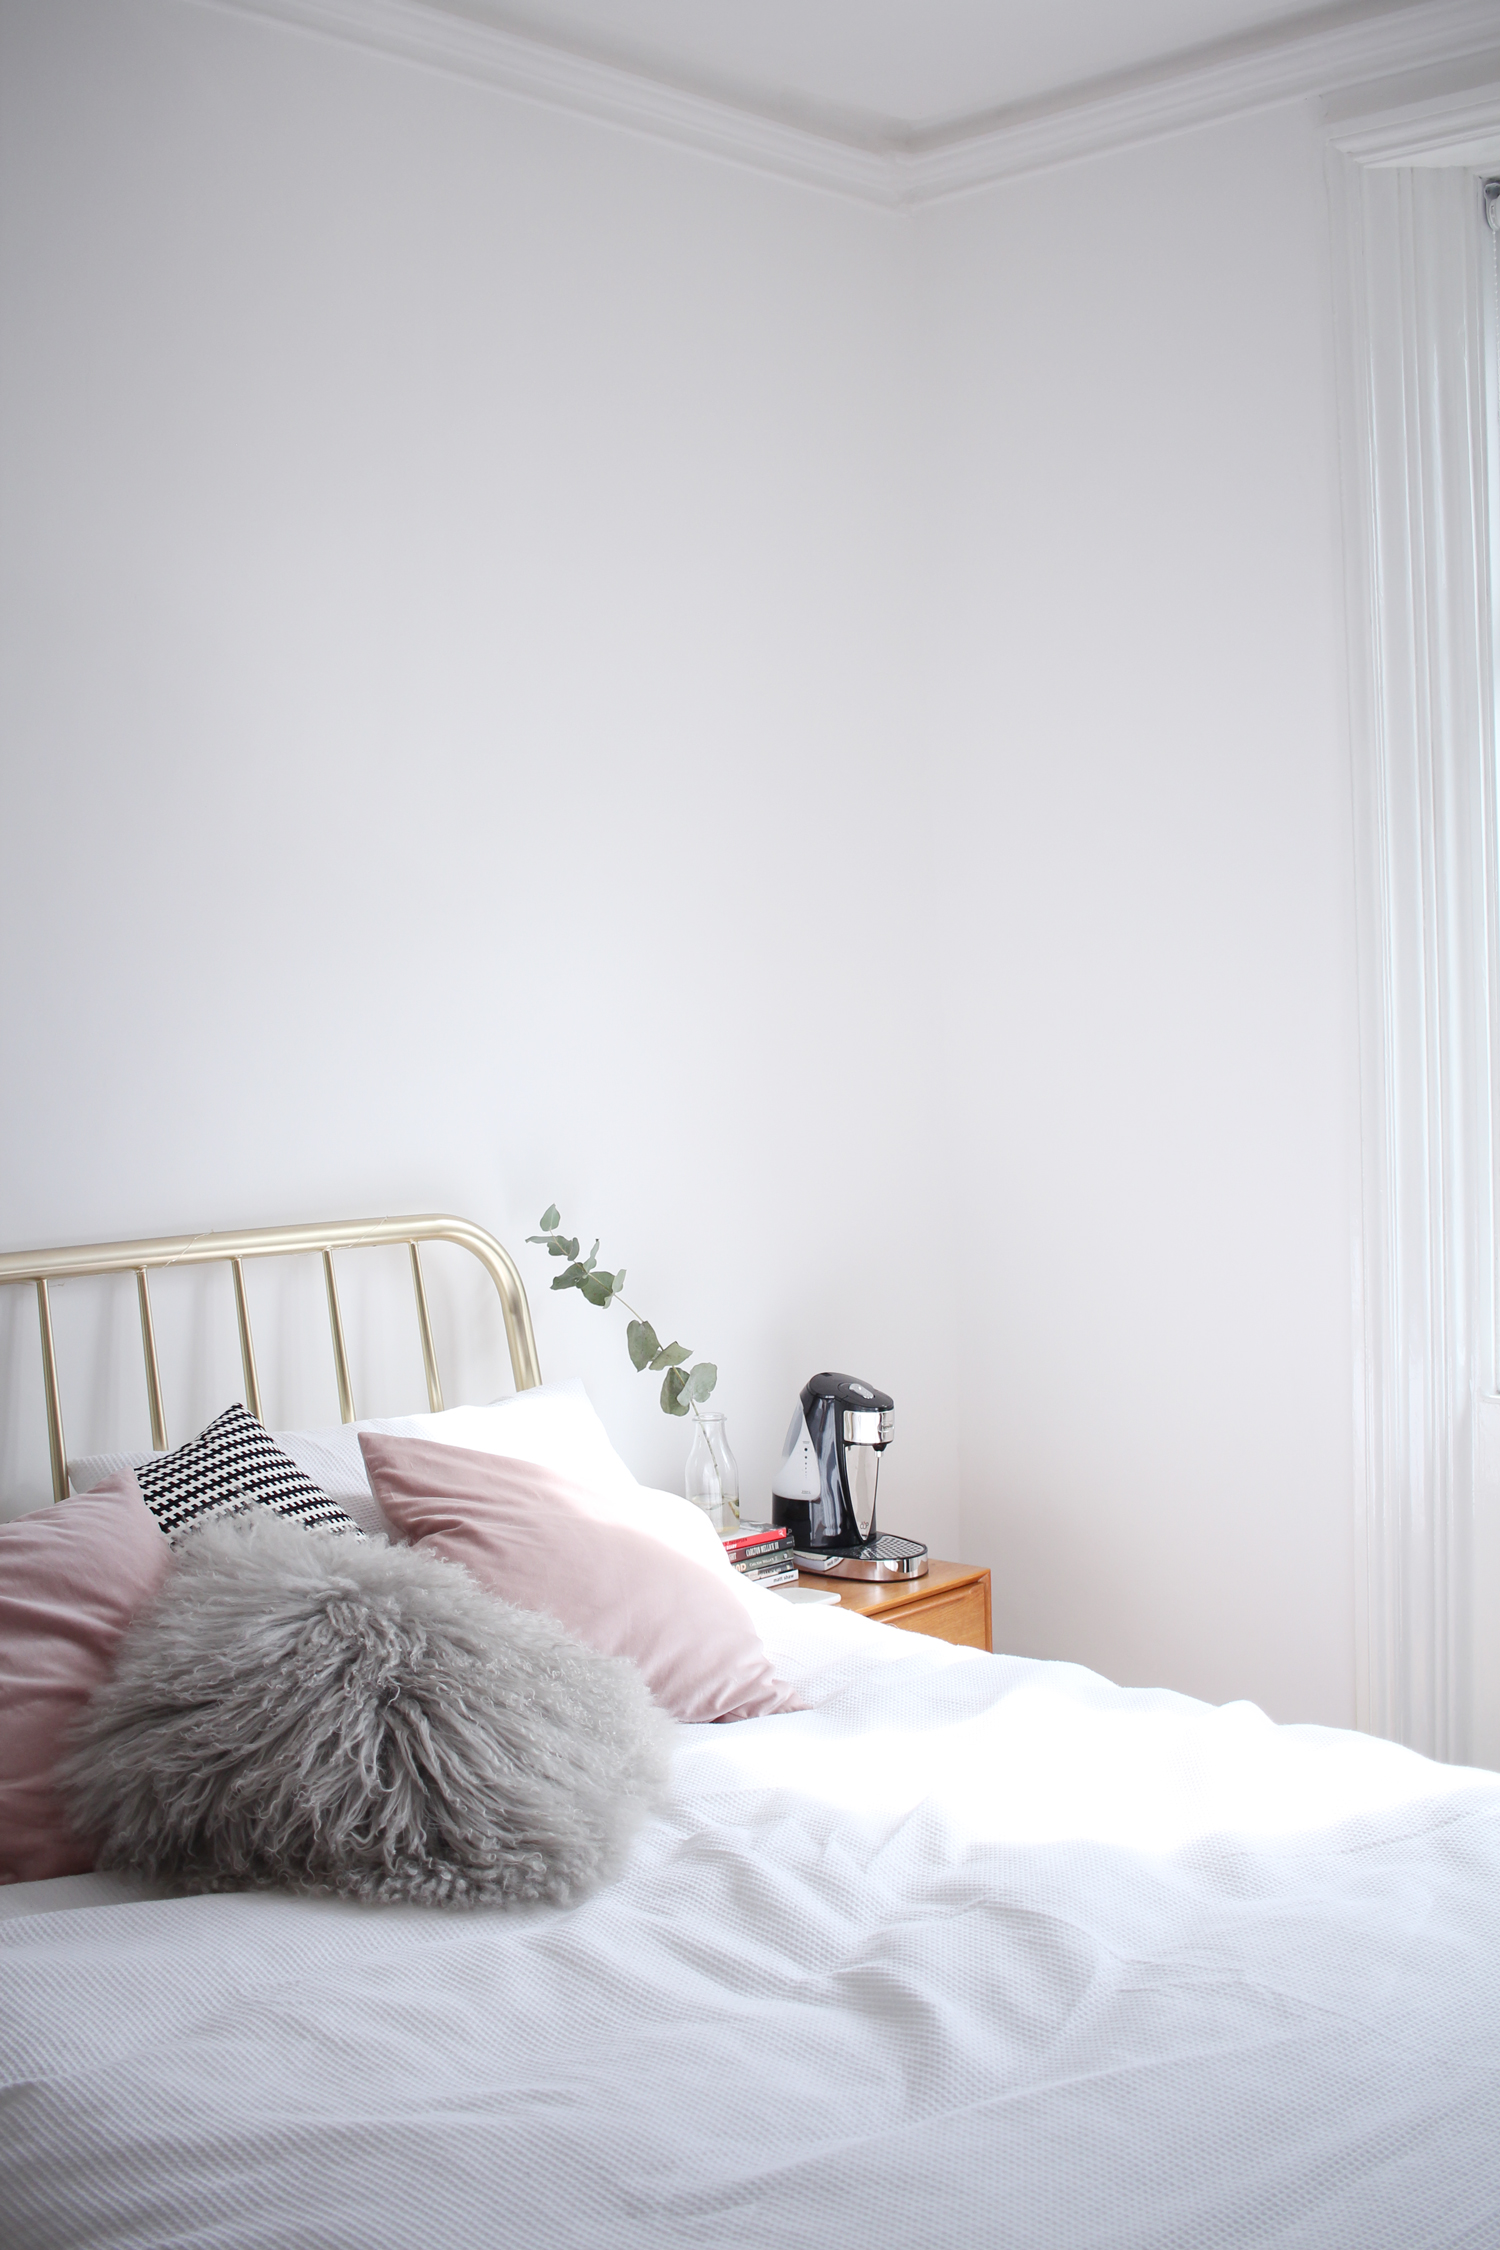 herdy-sleep-mattress-review-bedroom-interiors-blog-15